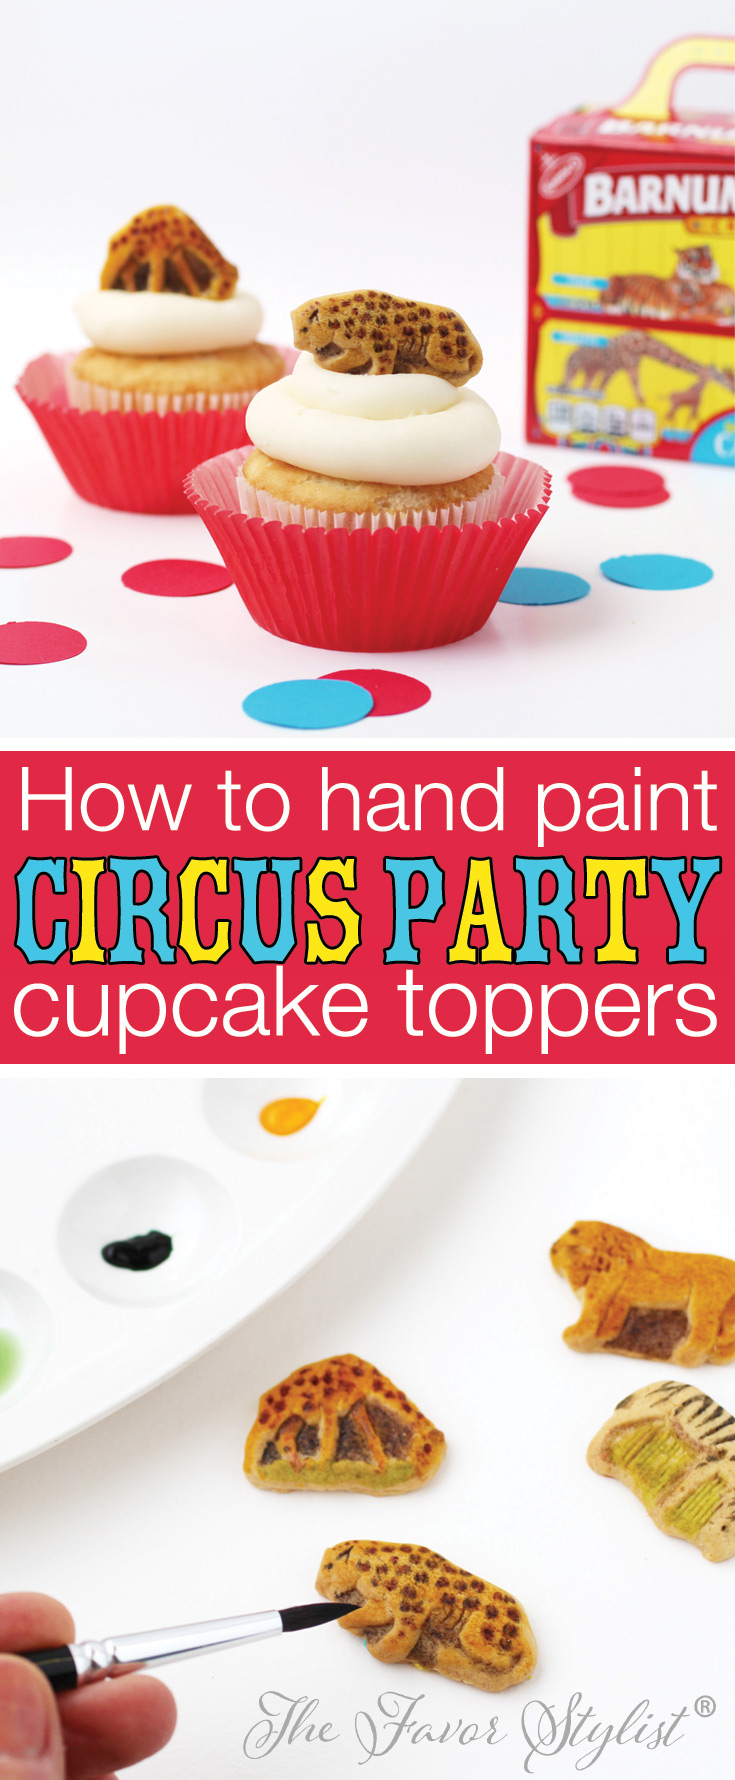 How to hand paint circus party cupcake toppers